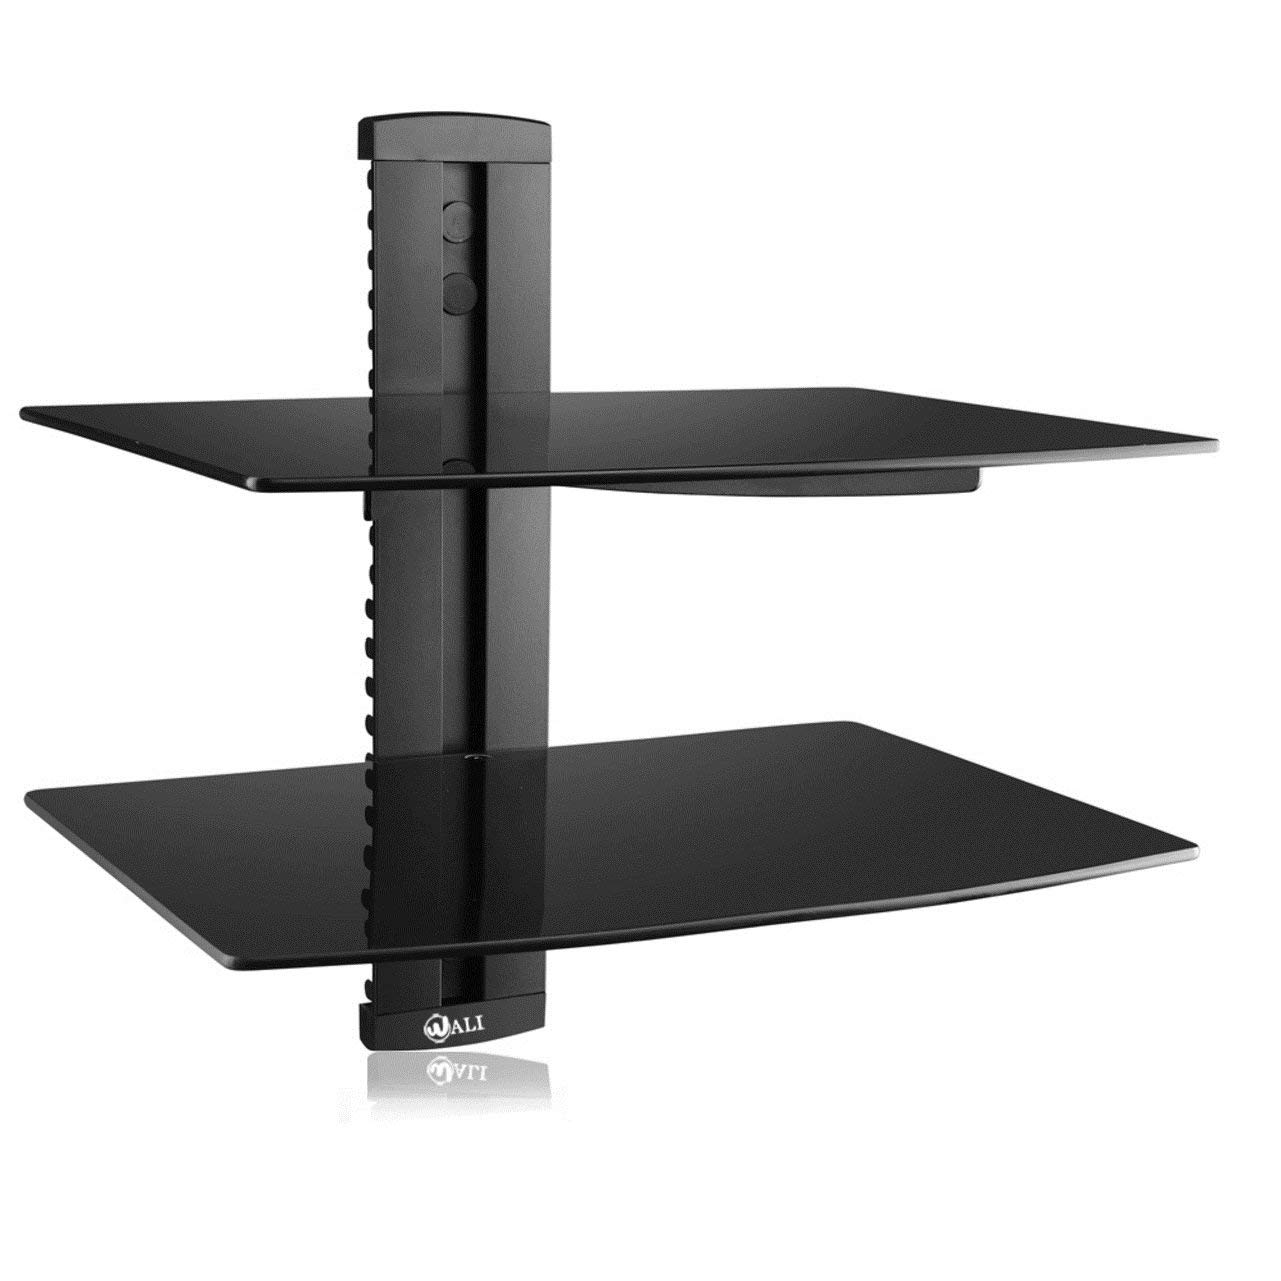 wali floating strengthened tempered glass for dvd shelf with players cable boxes games consoles accessories black home kitchen modern open shelving ideas person computer desk